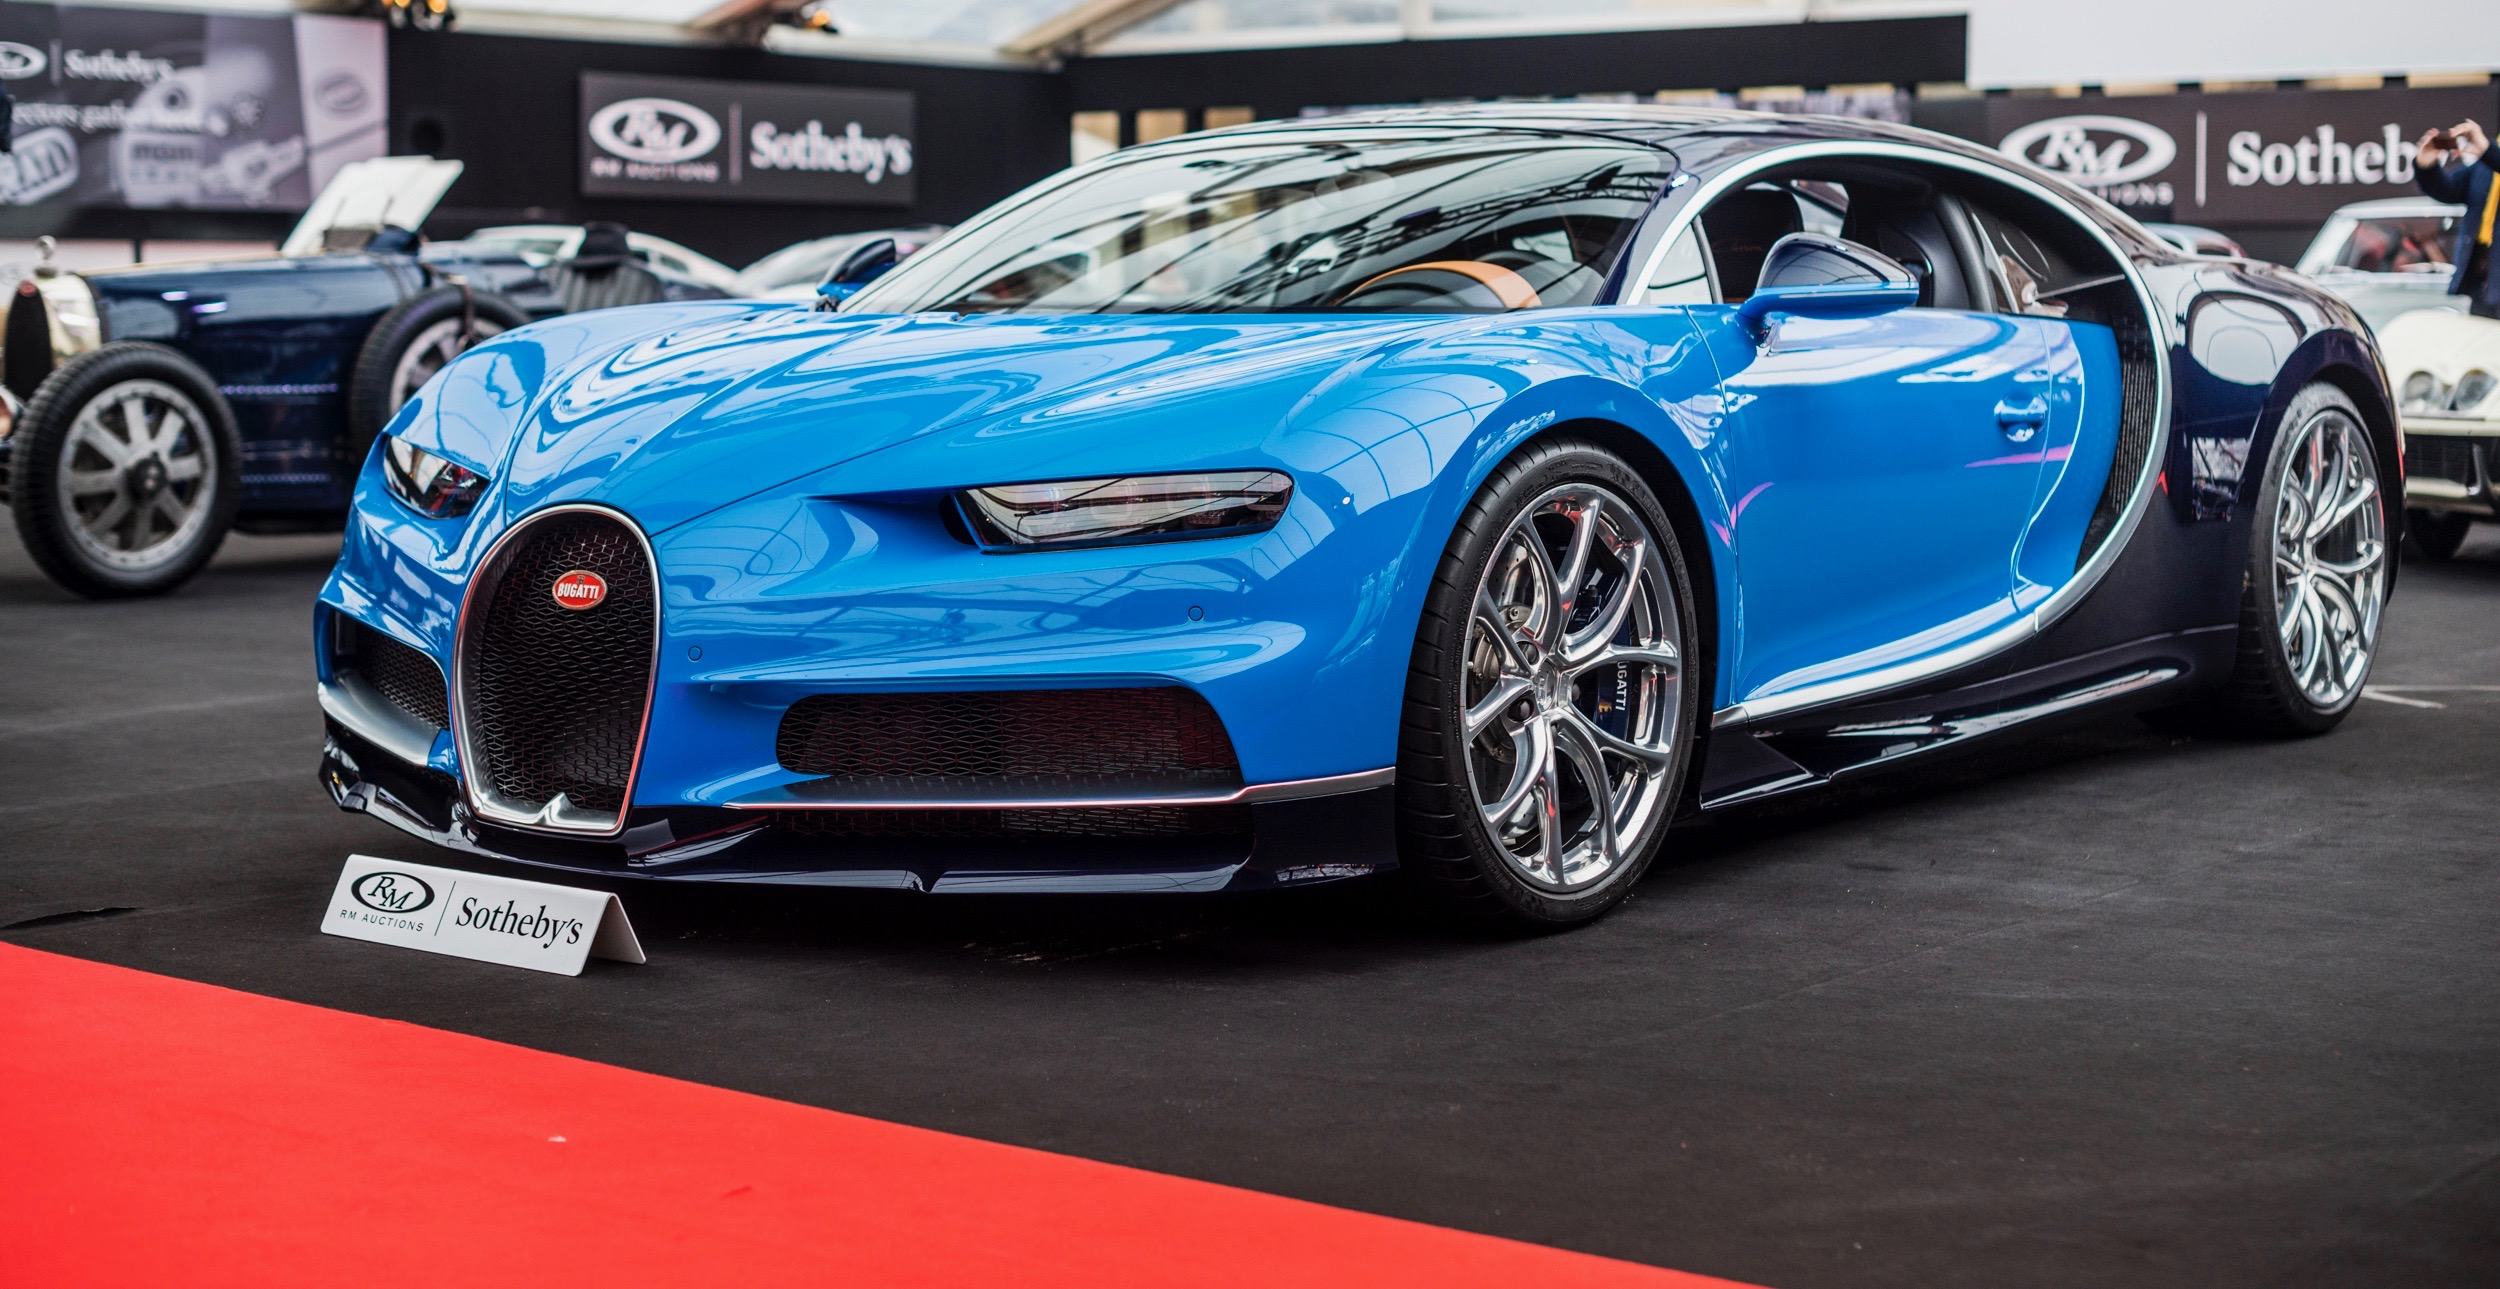 RM Sotheby's, Modern supercars set the pace at RM Sotheby's Paris auction, ClassicCars.com Journal